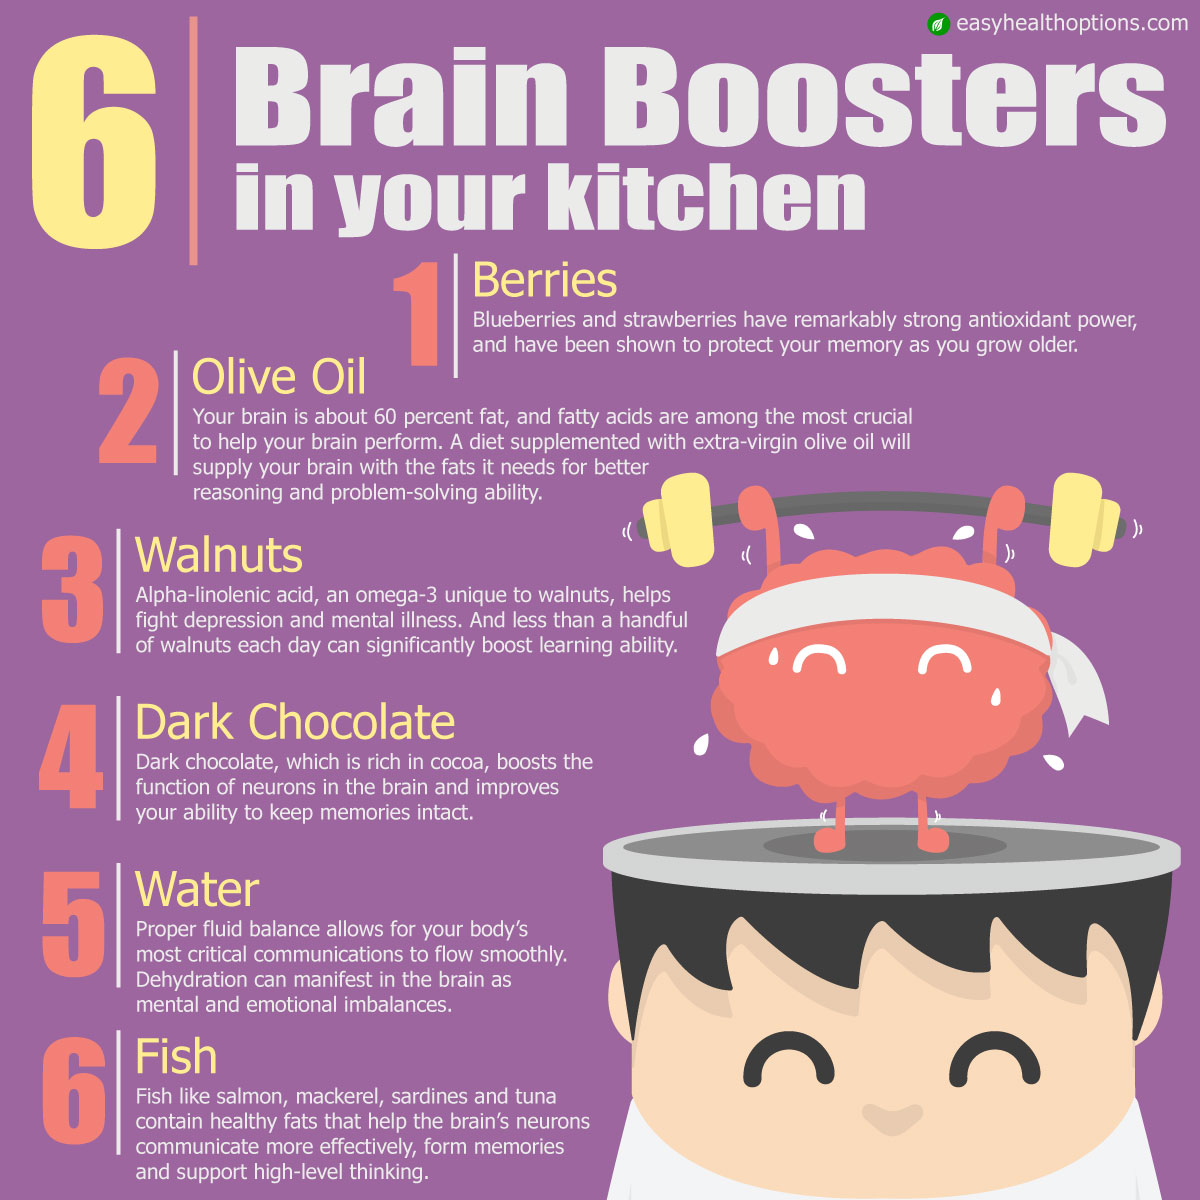 6 brain boosters in your kitchen [infographic]